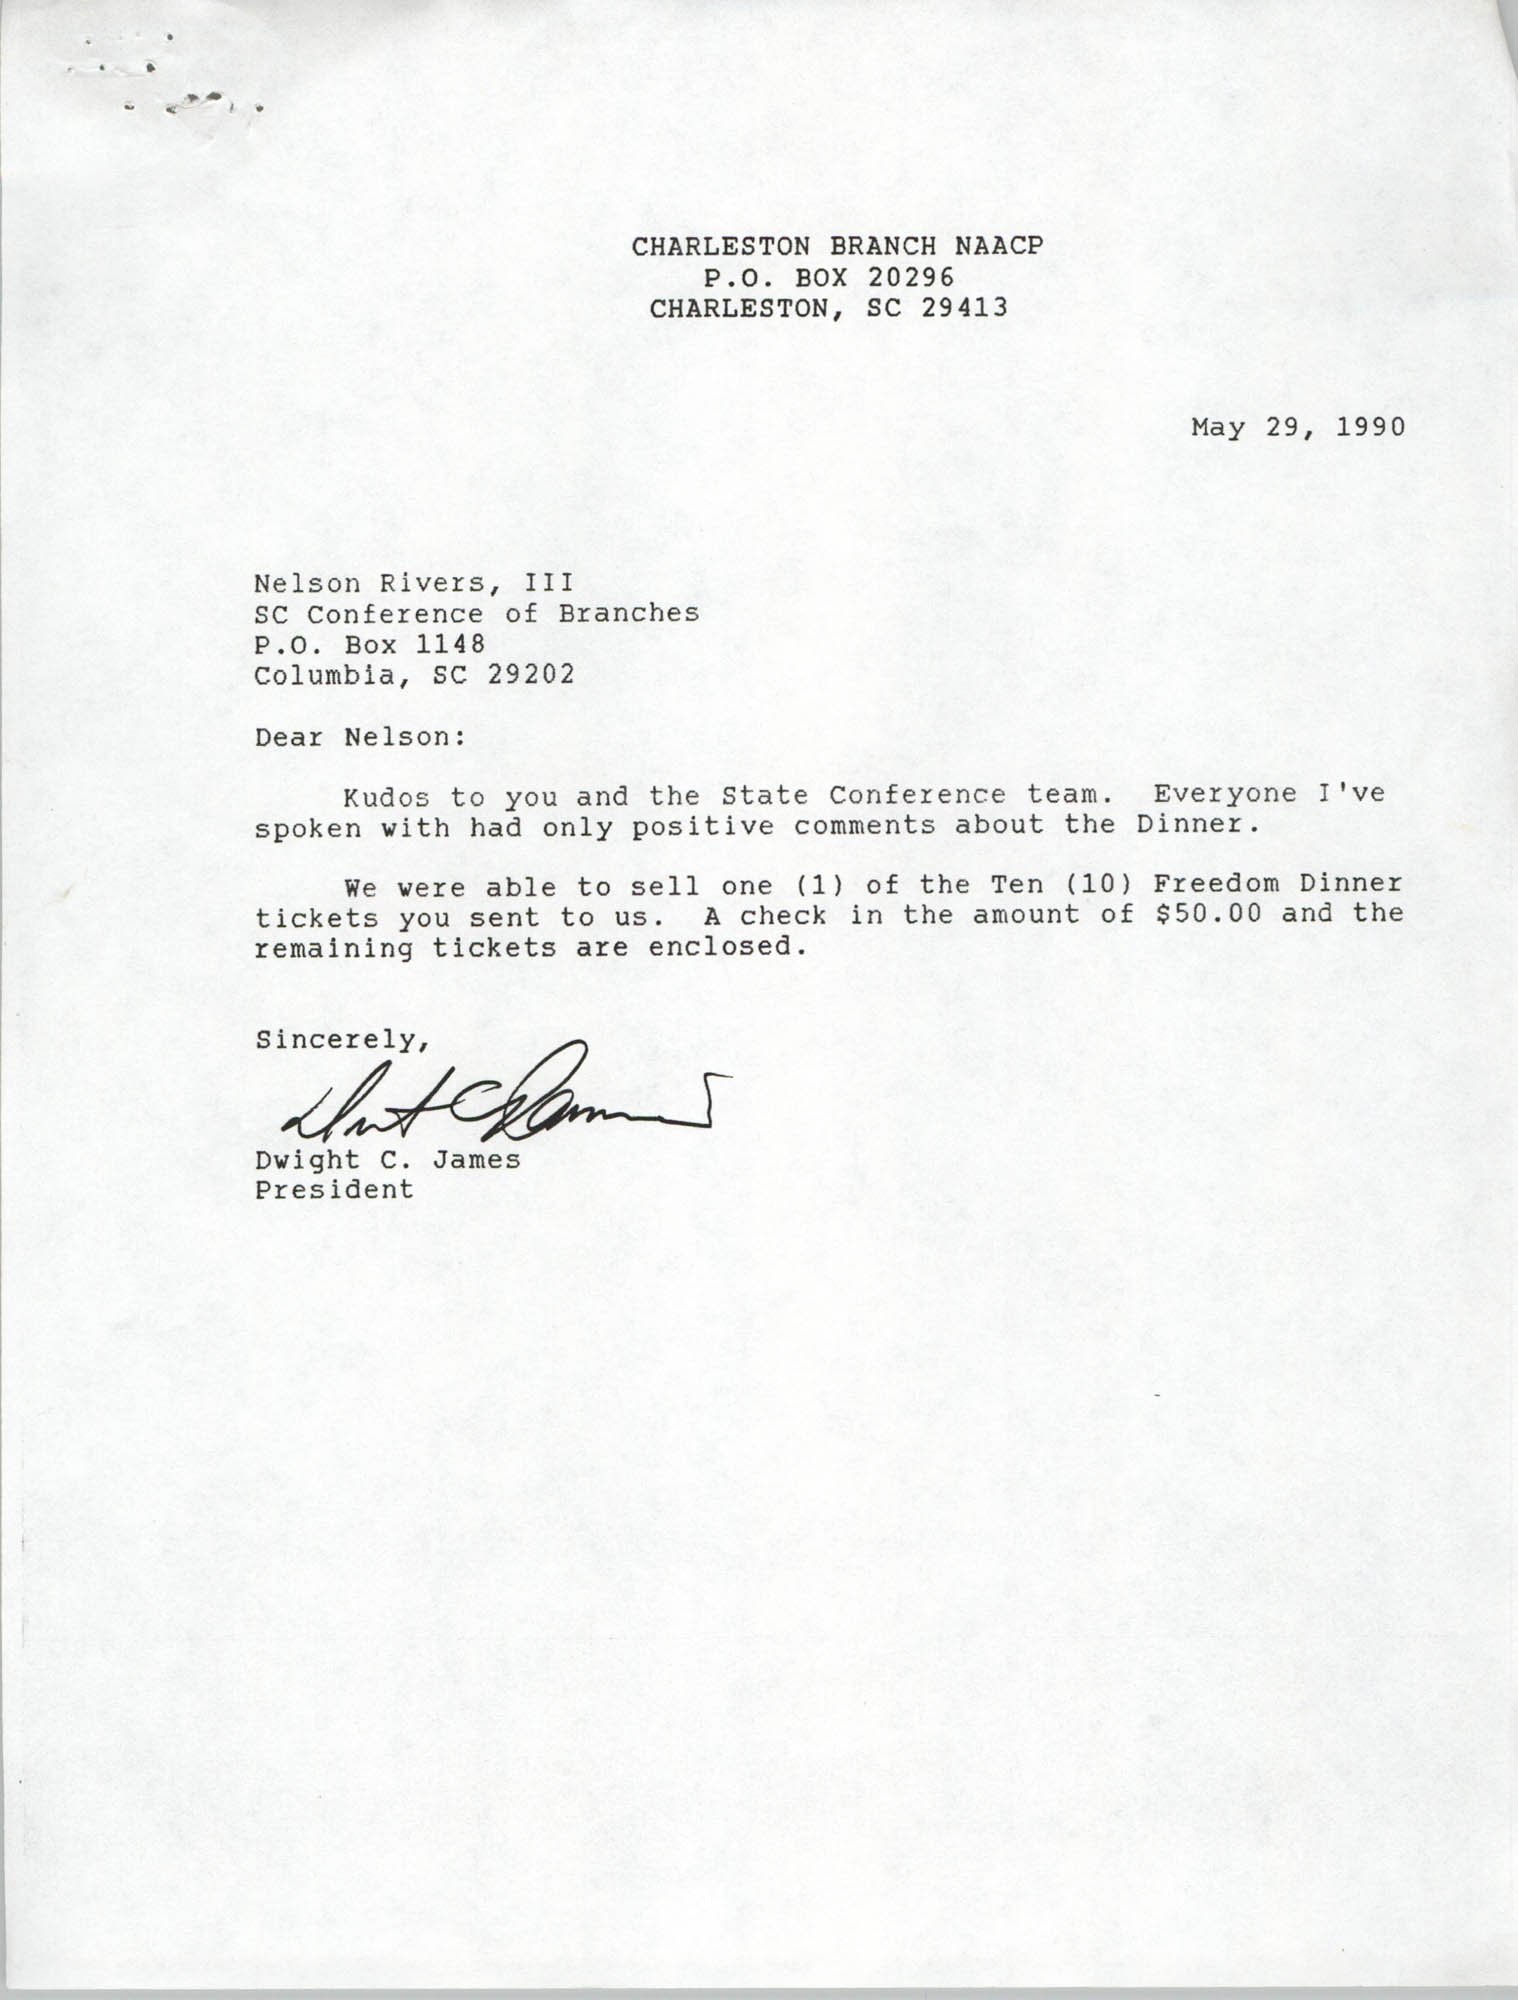 Letter from Dwight C. James to Nelson Rivers, III, May 29, 1990